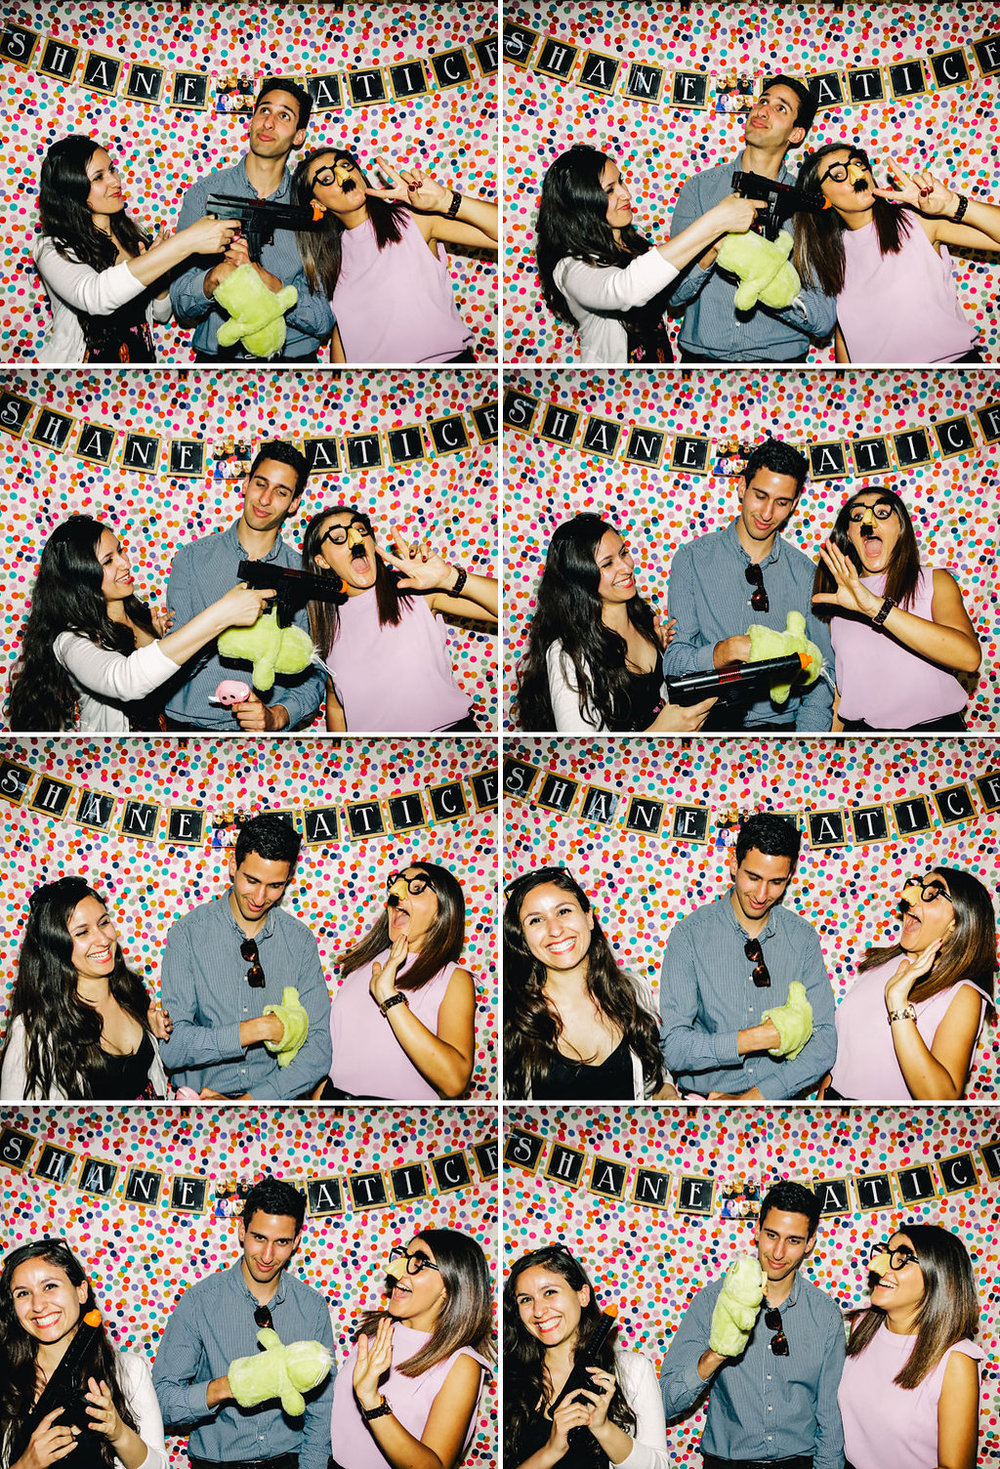 Sydney engagement party photo booth - confetti backdrop